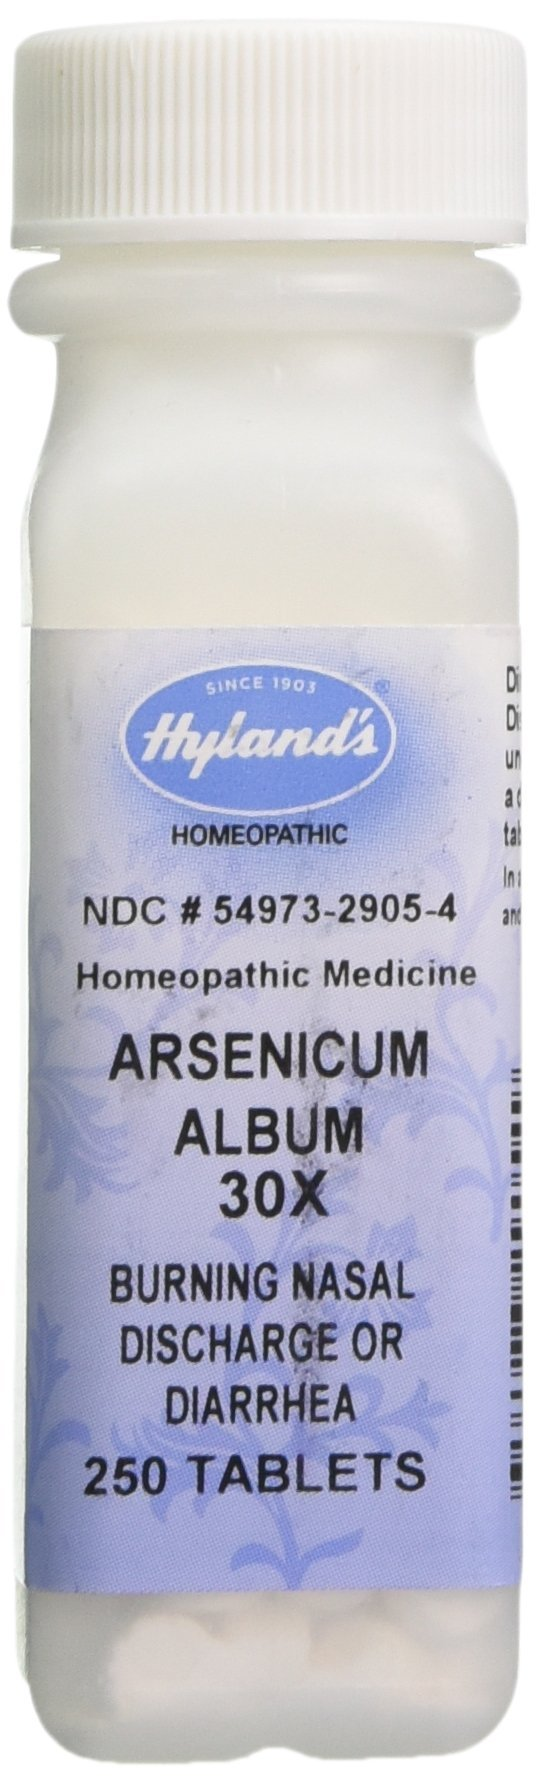 Hyland's Arsenicum Album 30X Tablets, Natural Relief of Burning Nasal Discharge or Diarrhea, 250 Count